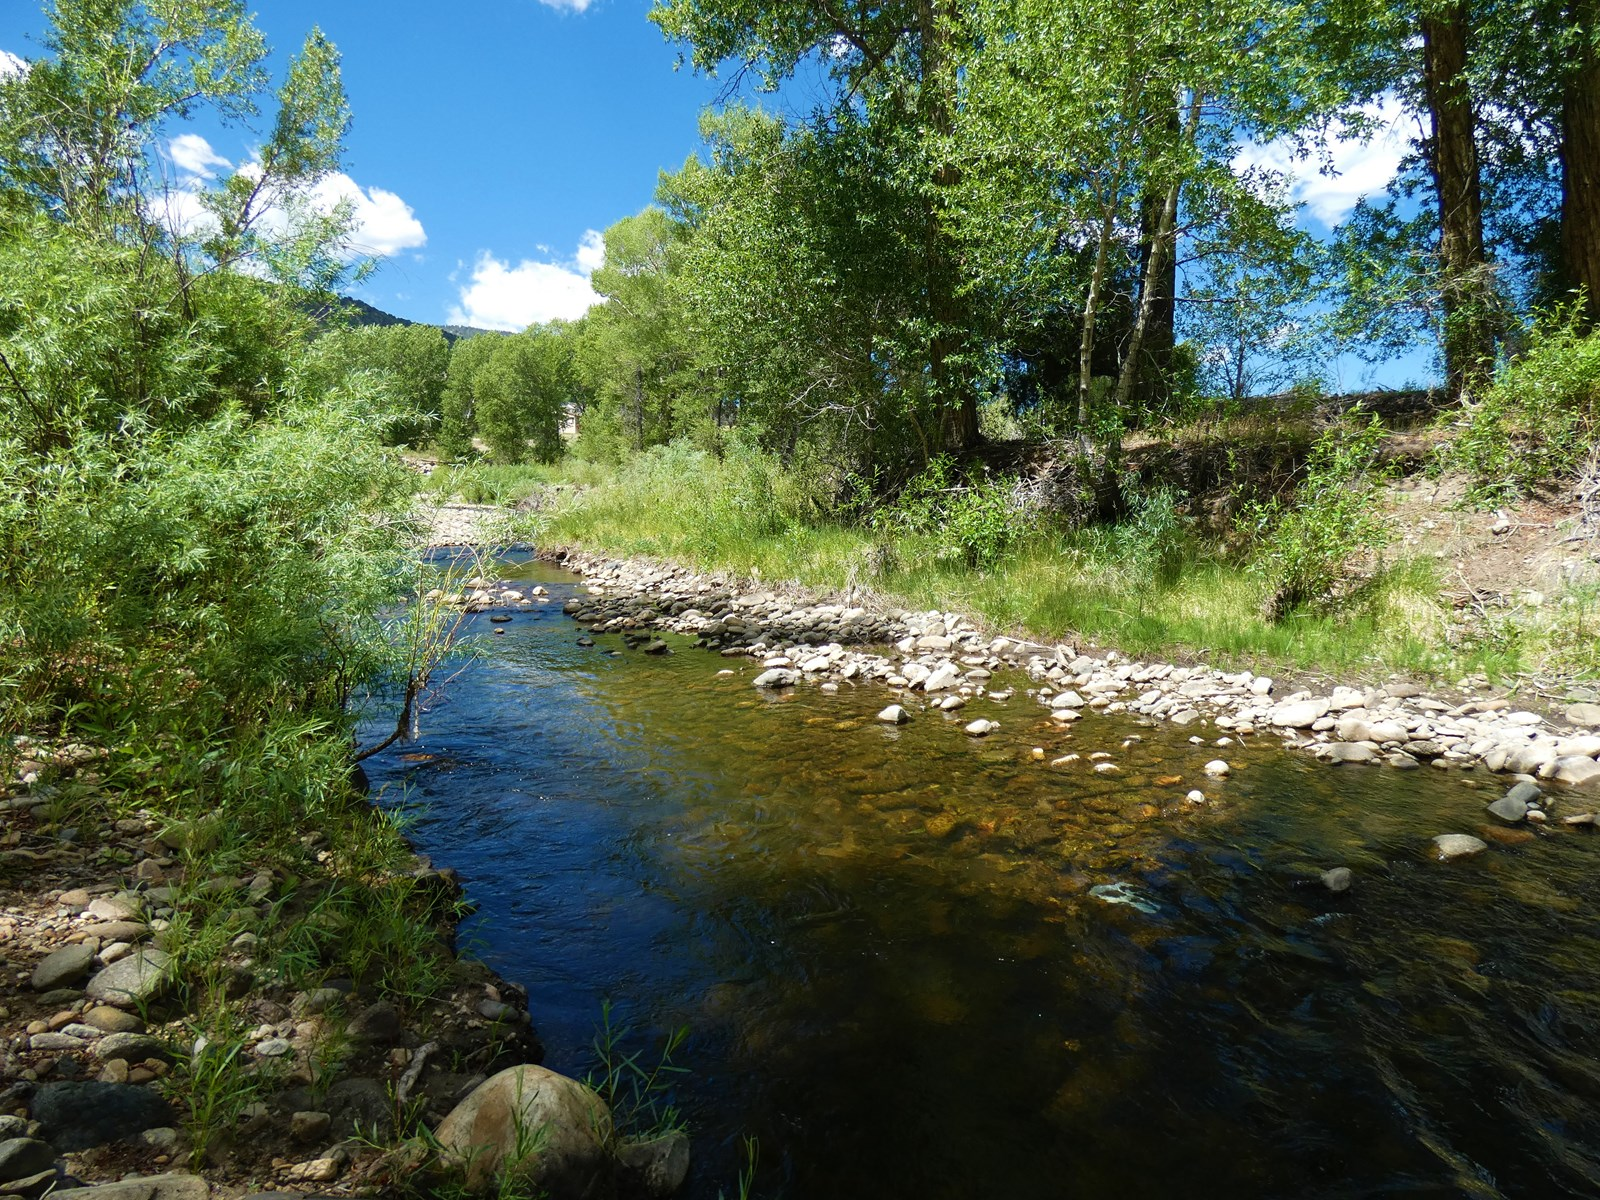 Riverfront Property Near Salida, CO-1122 Little River Lane